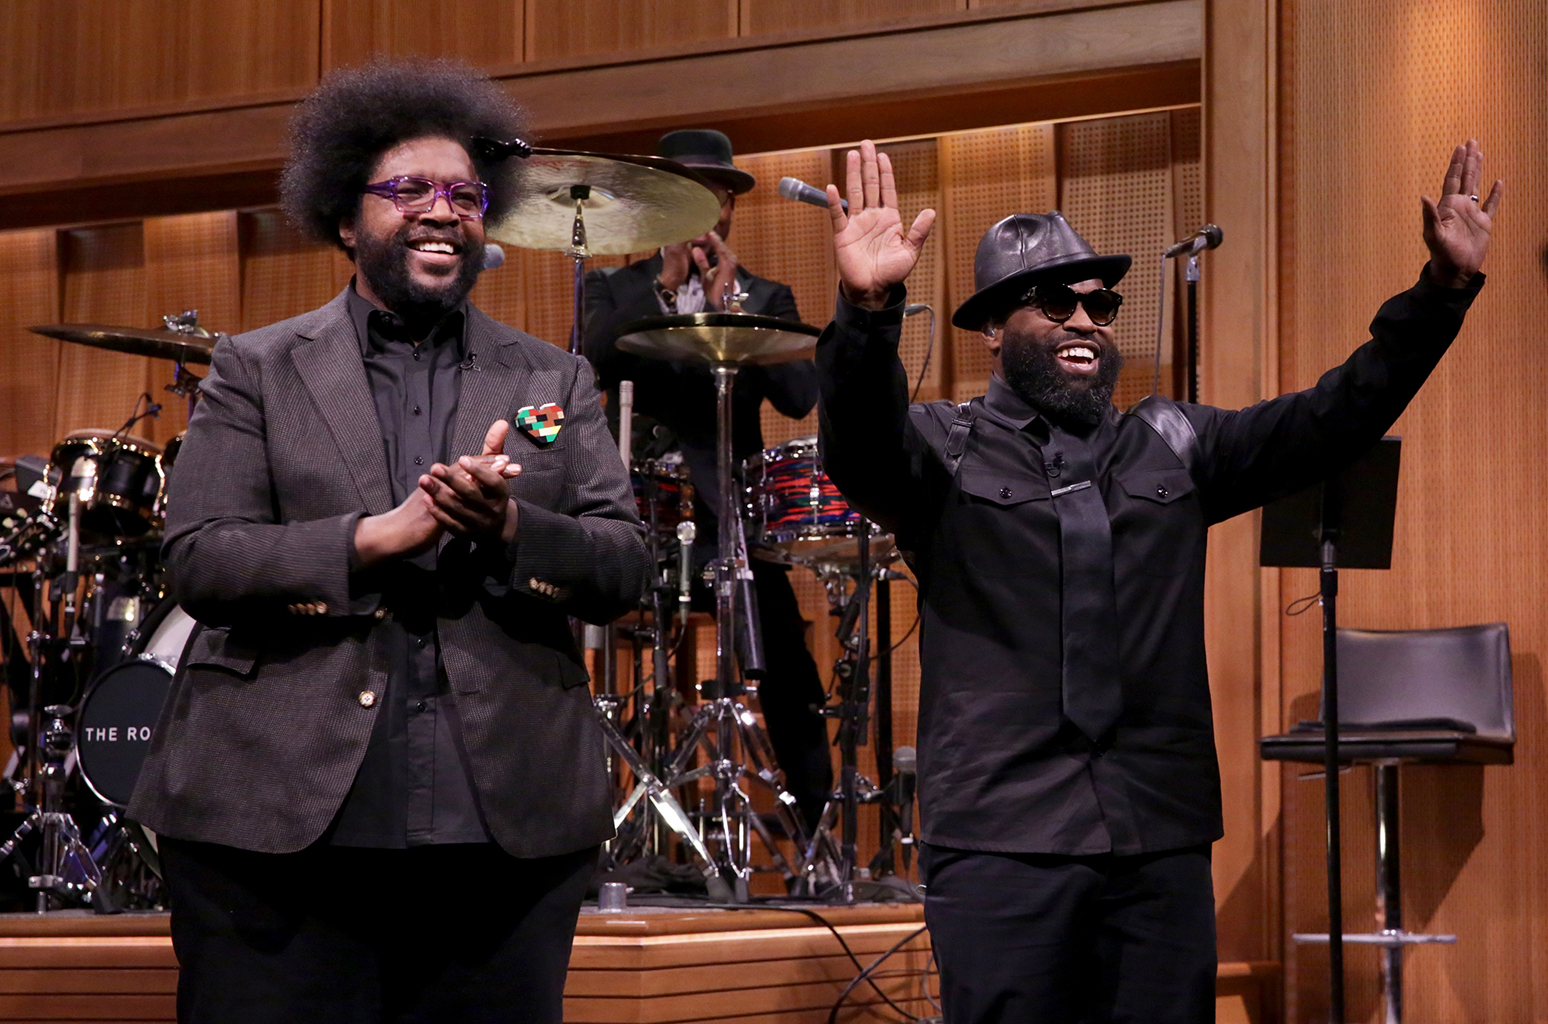 The Roots' SXSW Show Reportedly Canceled Due to Bomb Threats